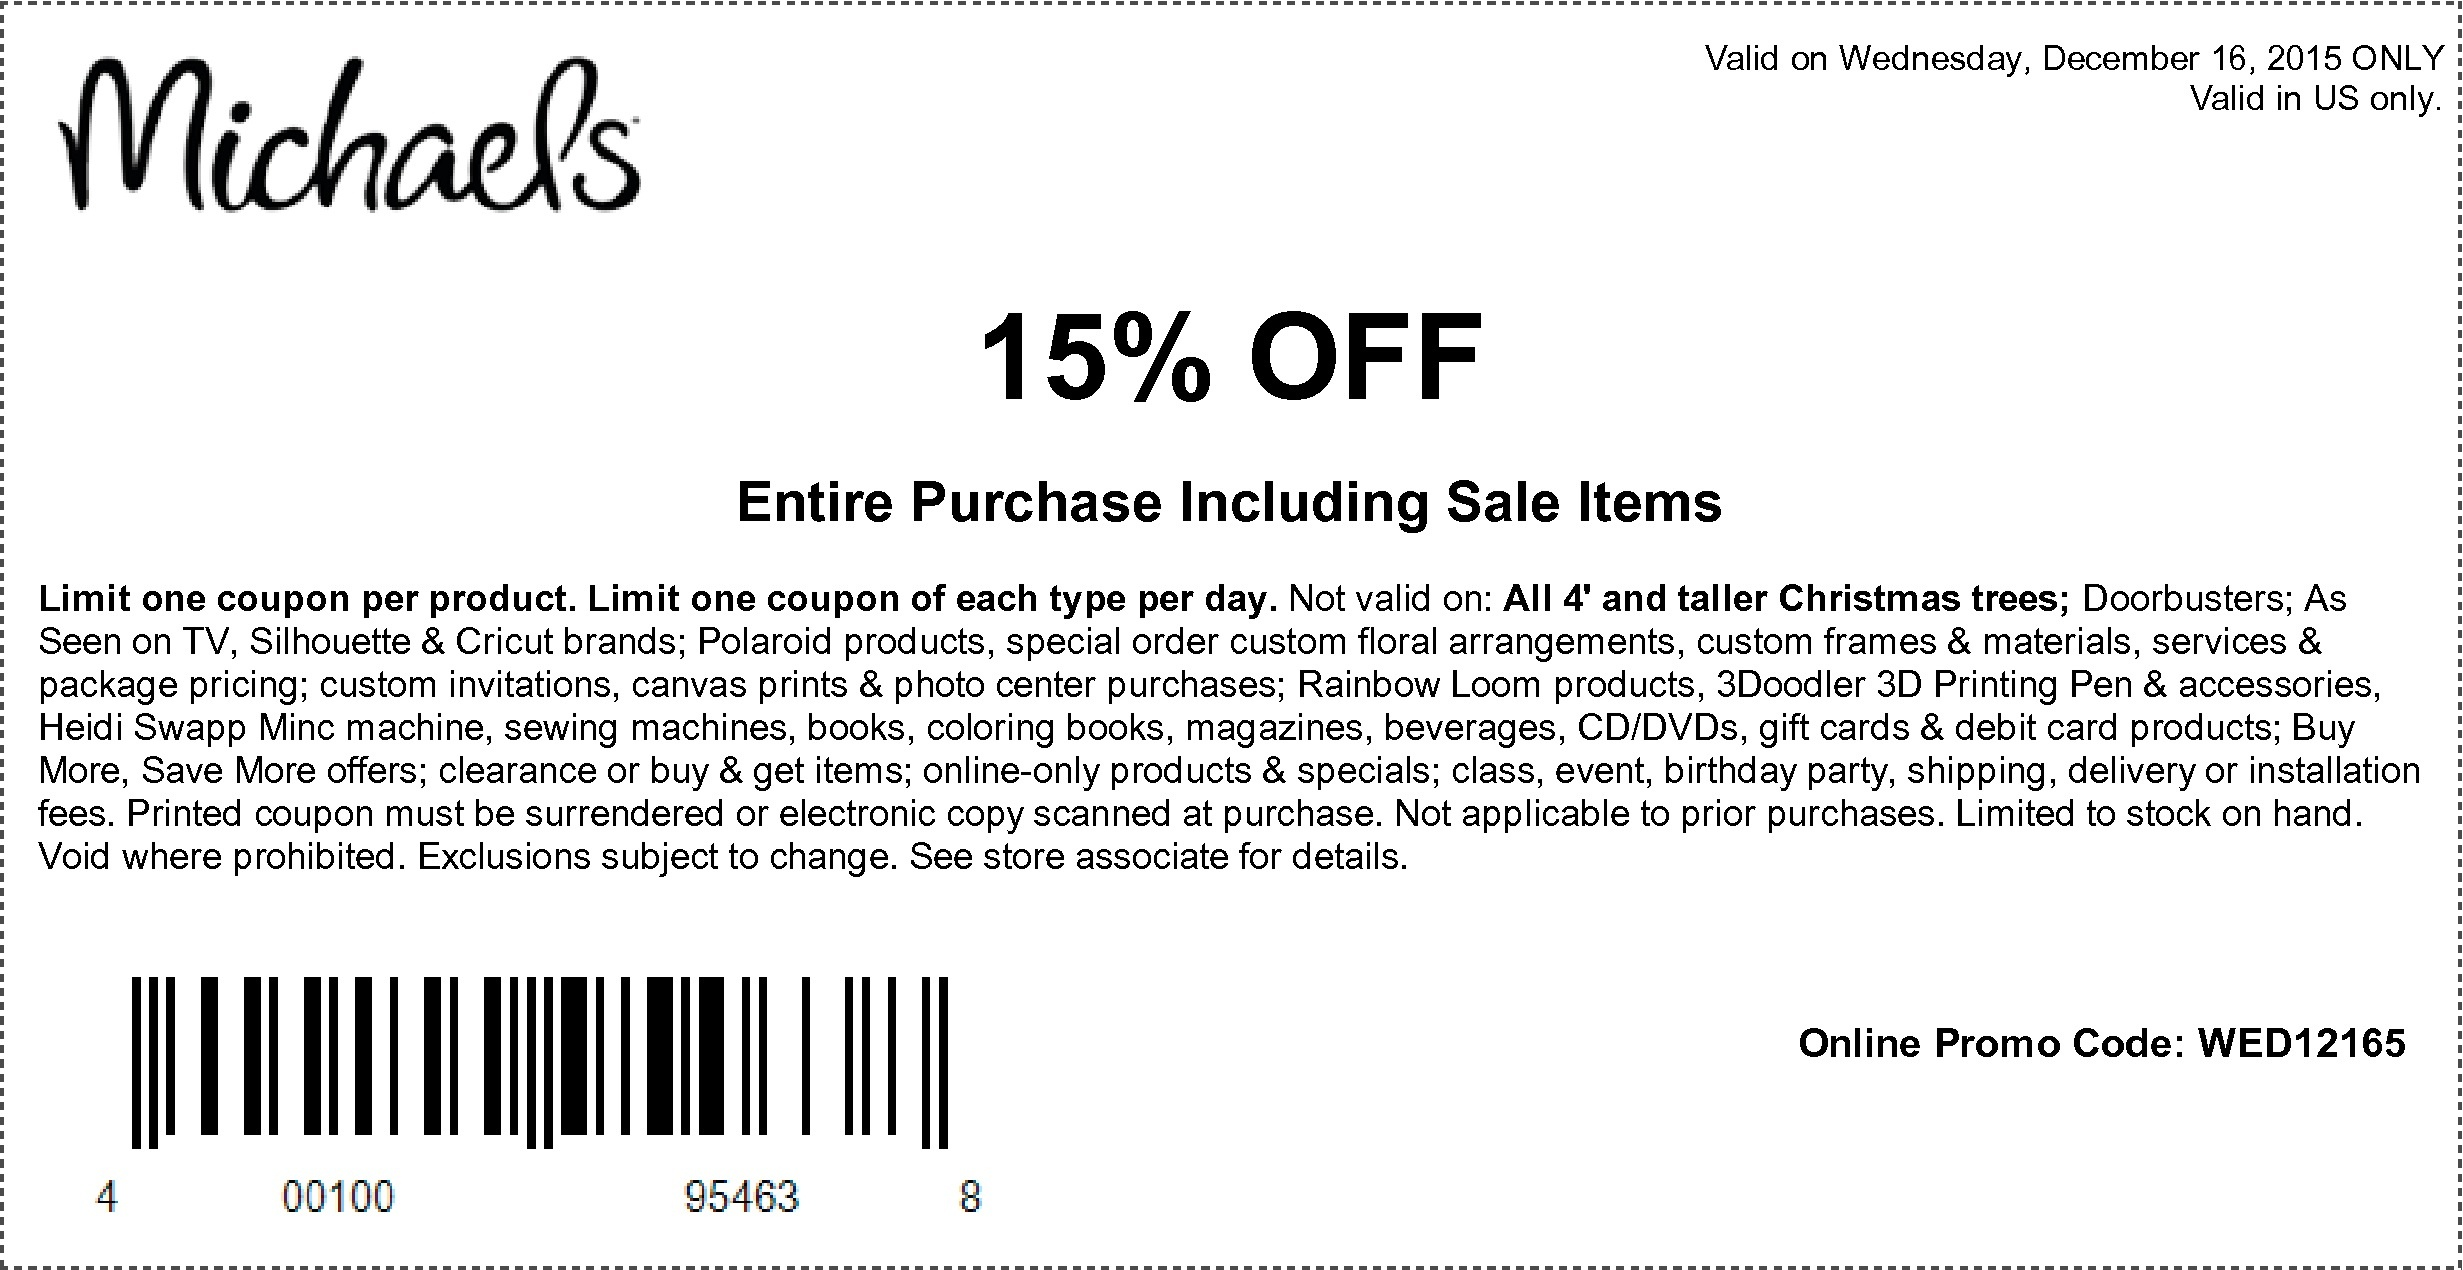 Michaels Free Printable Coupons | Printable Coupons Online - Free Printable Coupons 2014